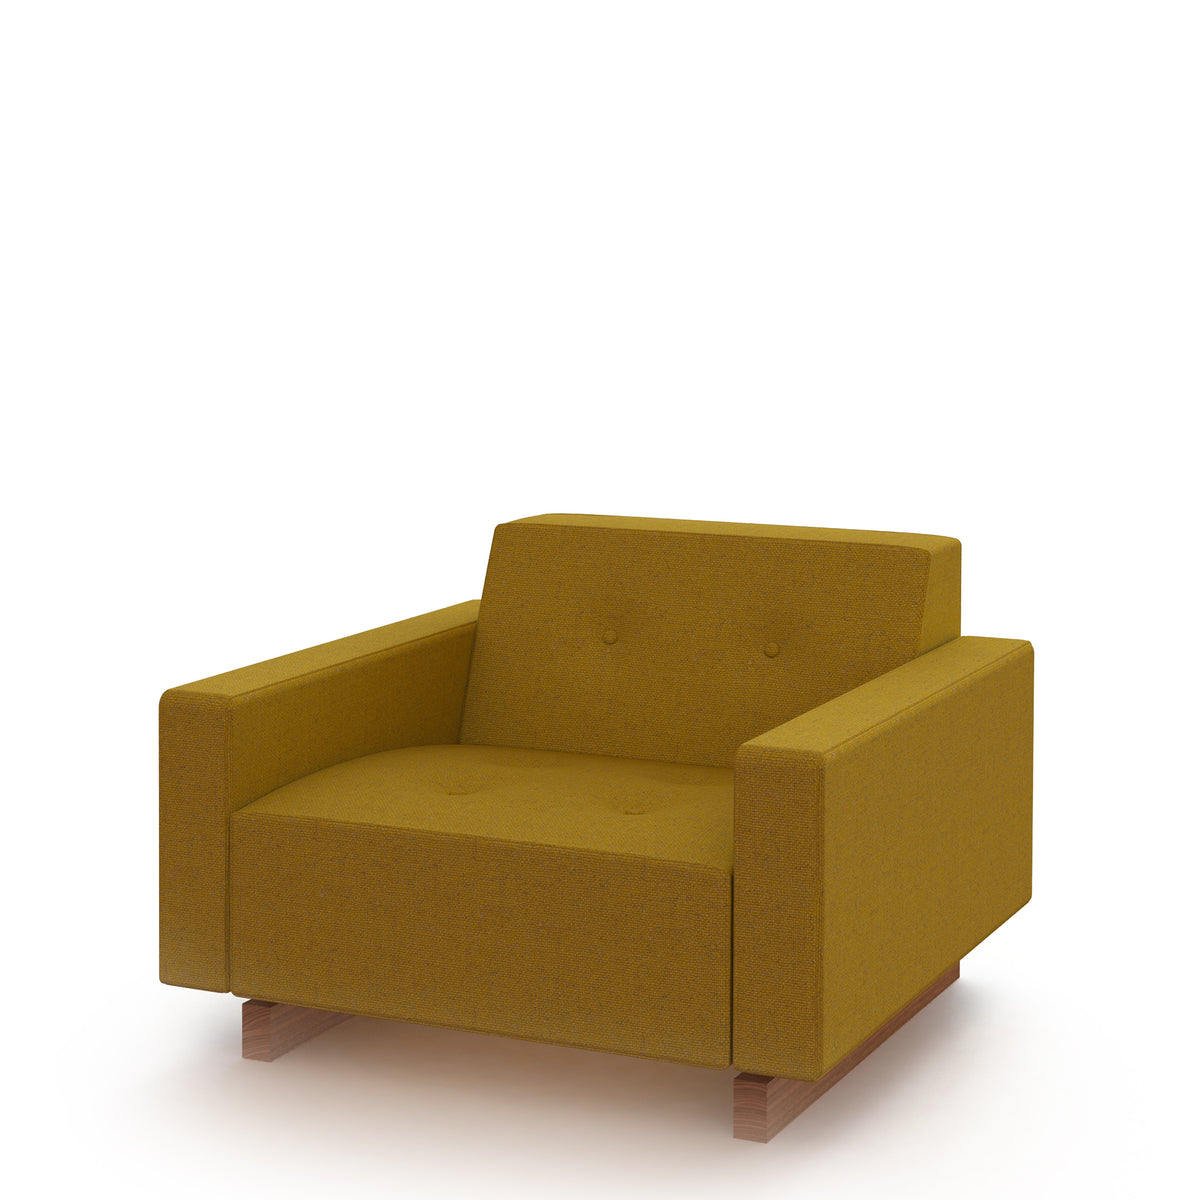 Hitch Mylius Office HM46 Tooting Abbey Armchair